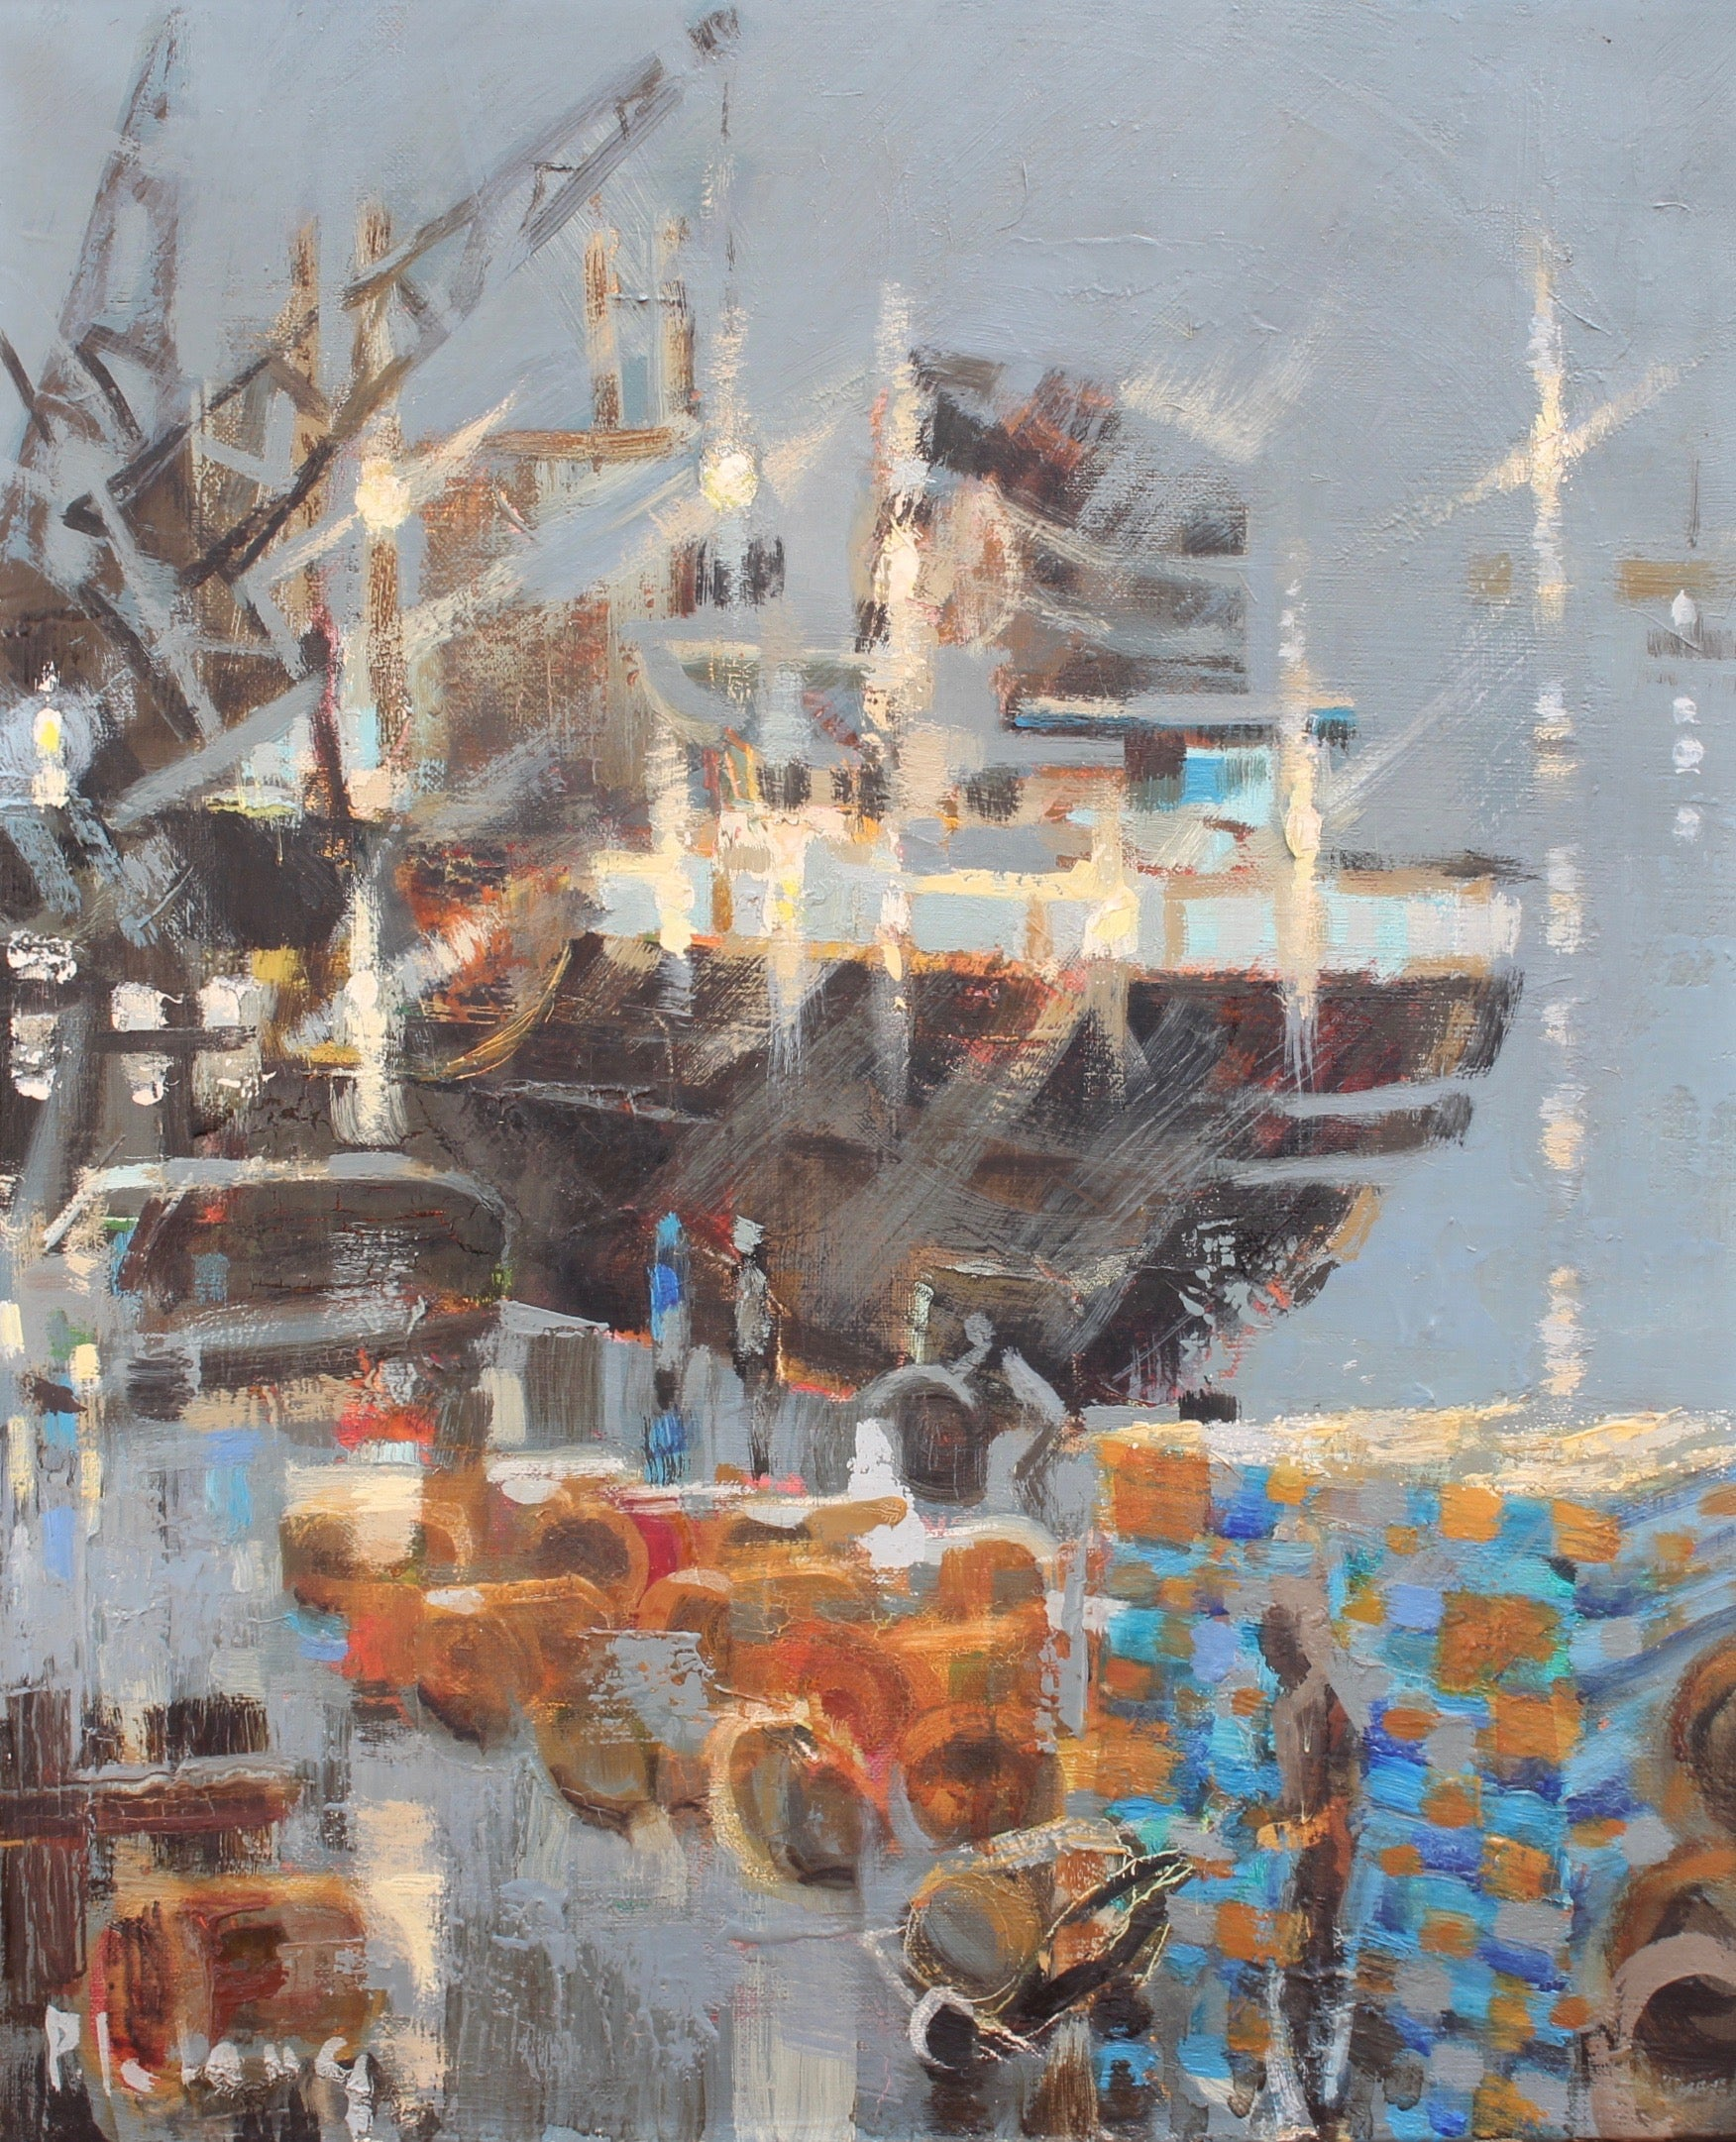 'Stopover in Port' by Pierre Lelong (circa 1960s - 70s)